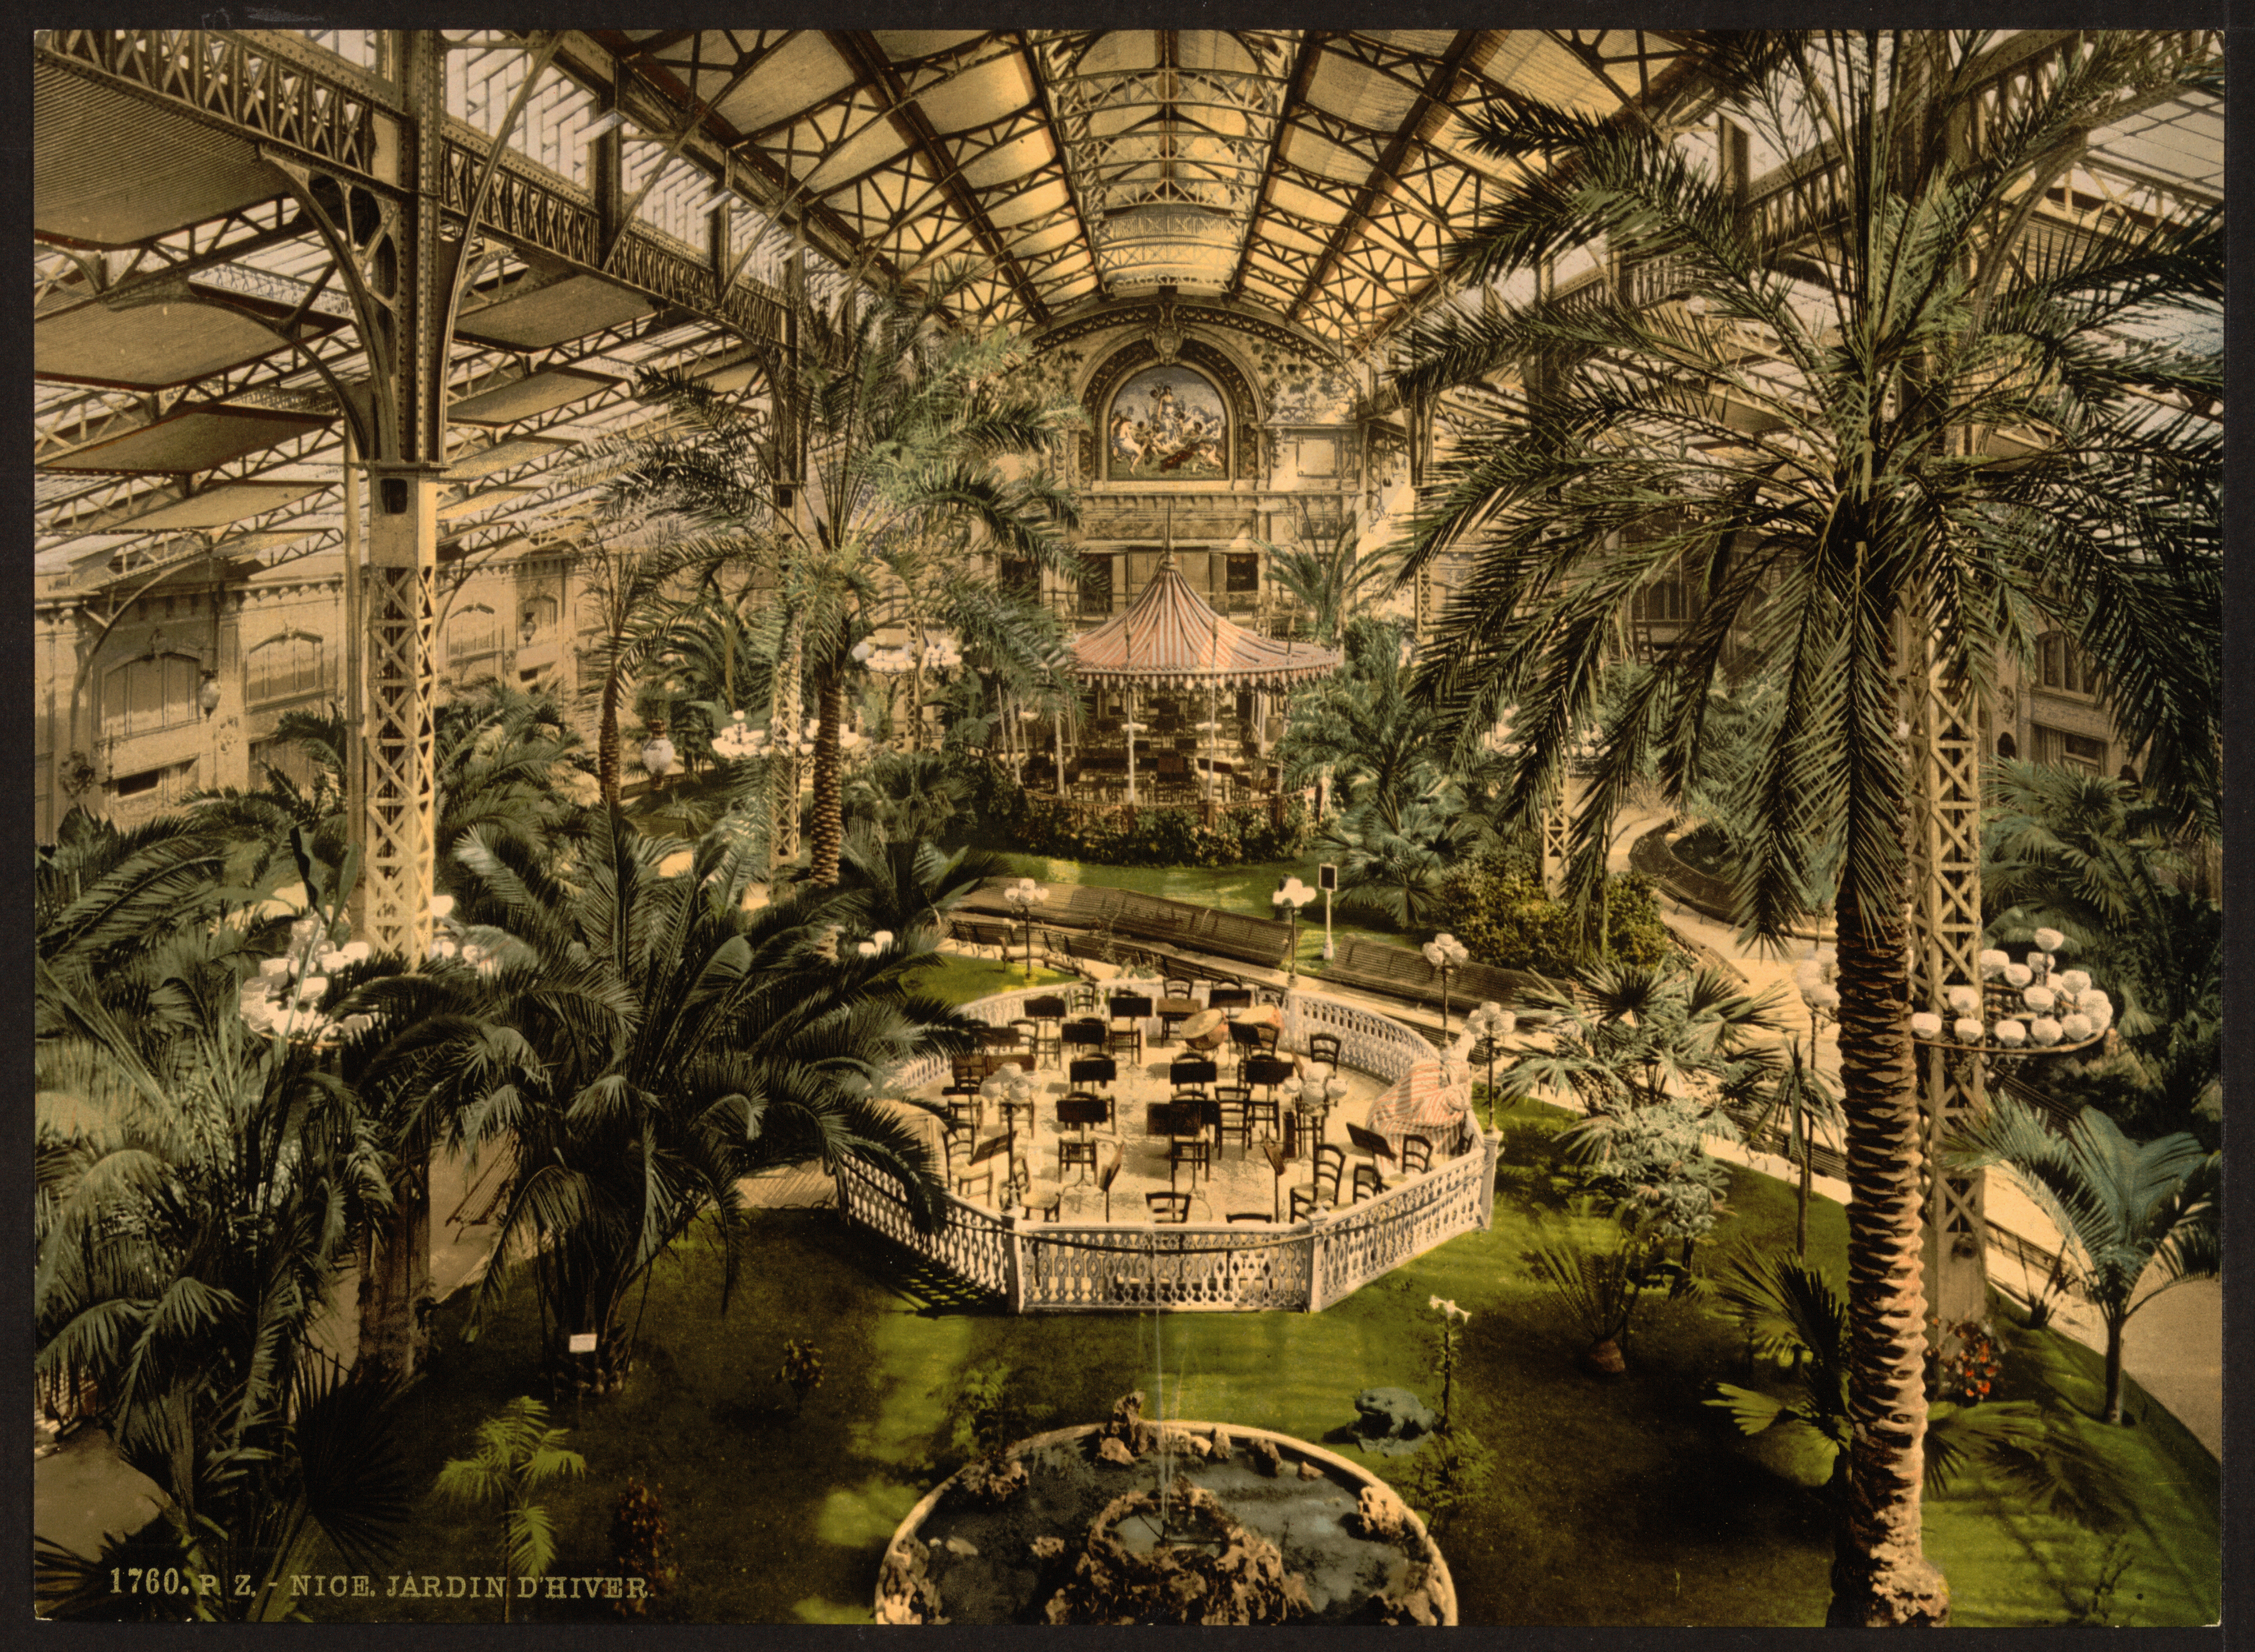 Indoor Winter Garden Nice France Postcard circa 1890 1900